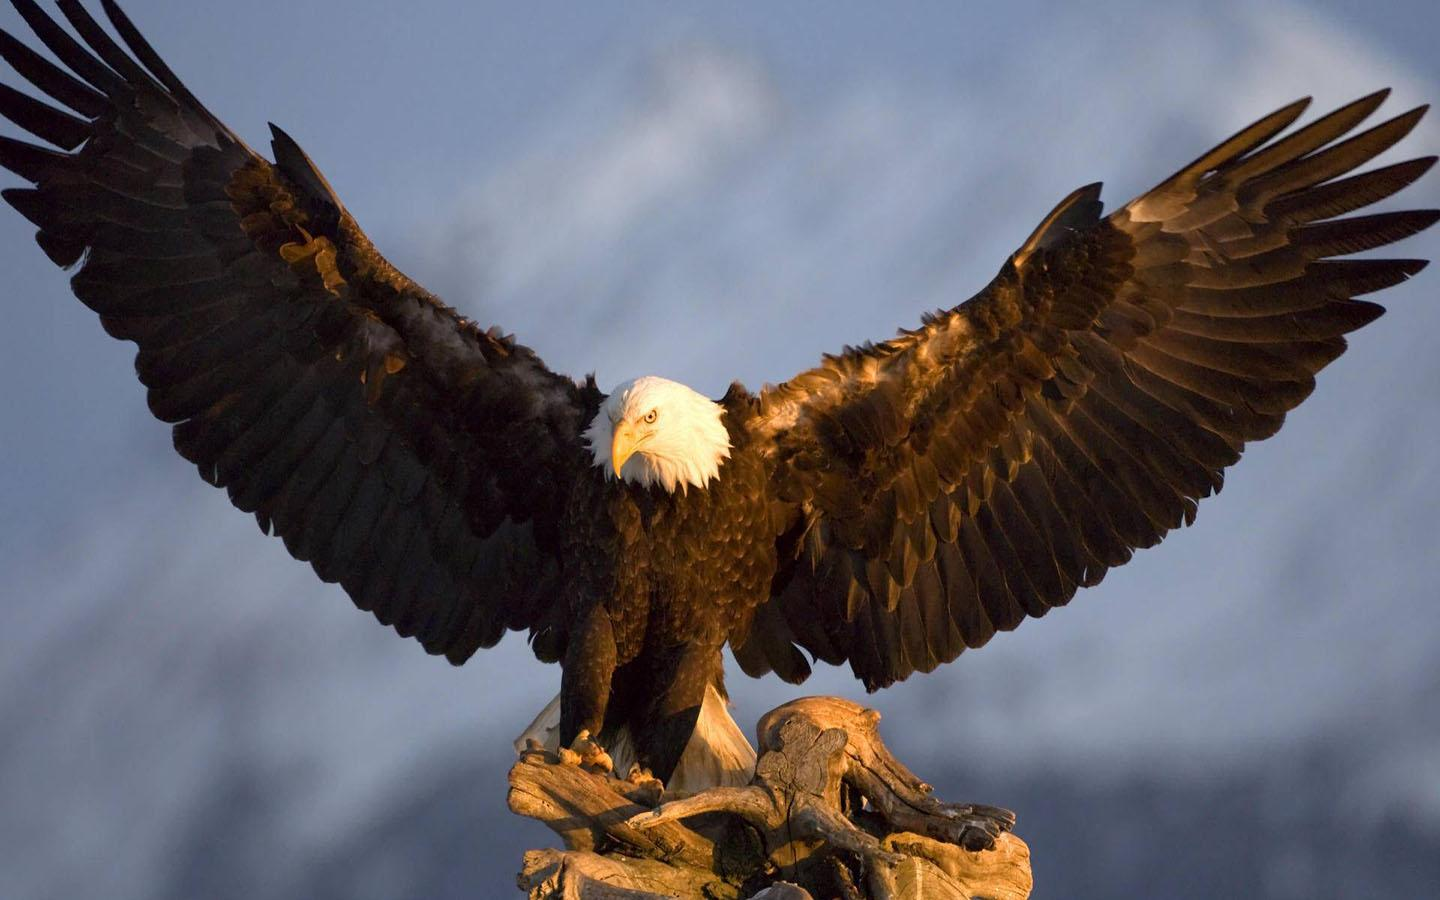 Bald Eagle Wallpaper - Android Apps on Google Play